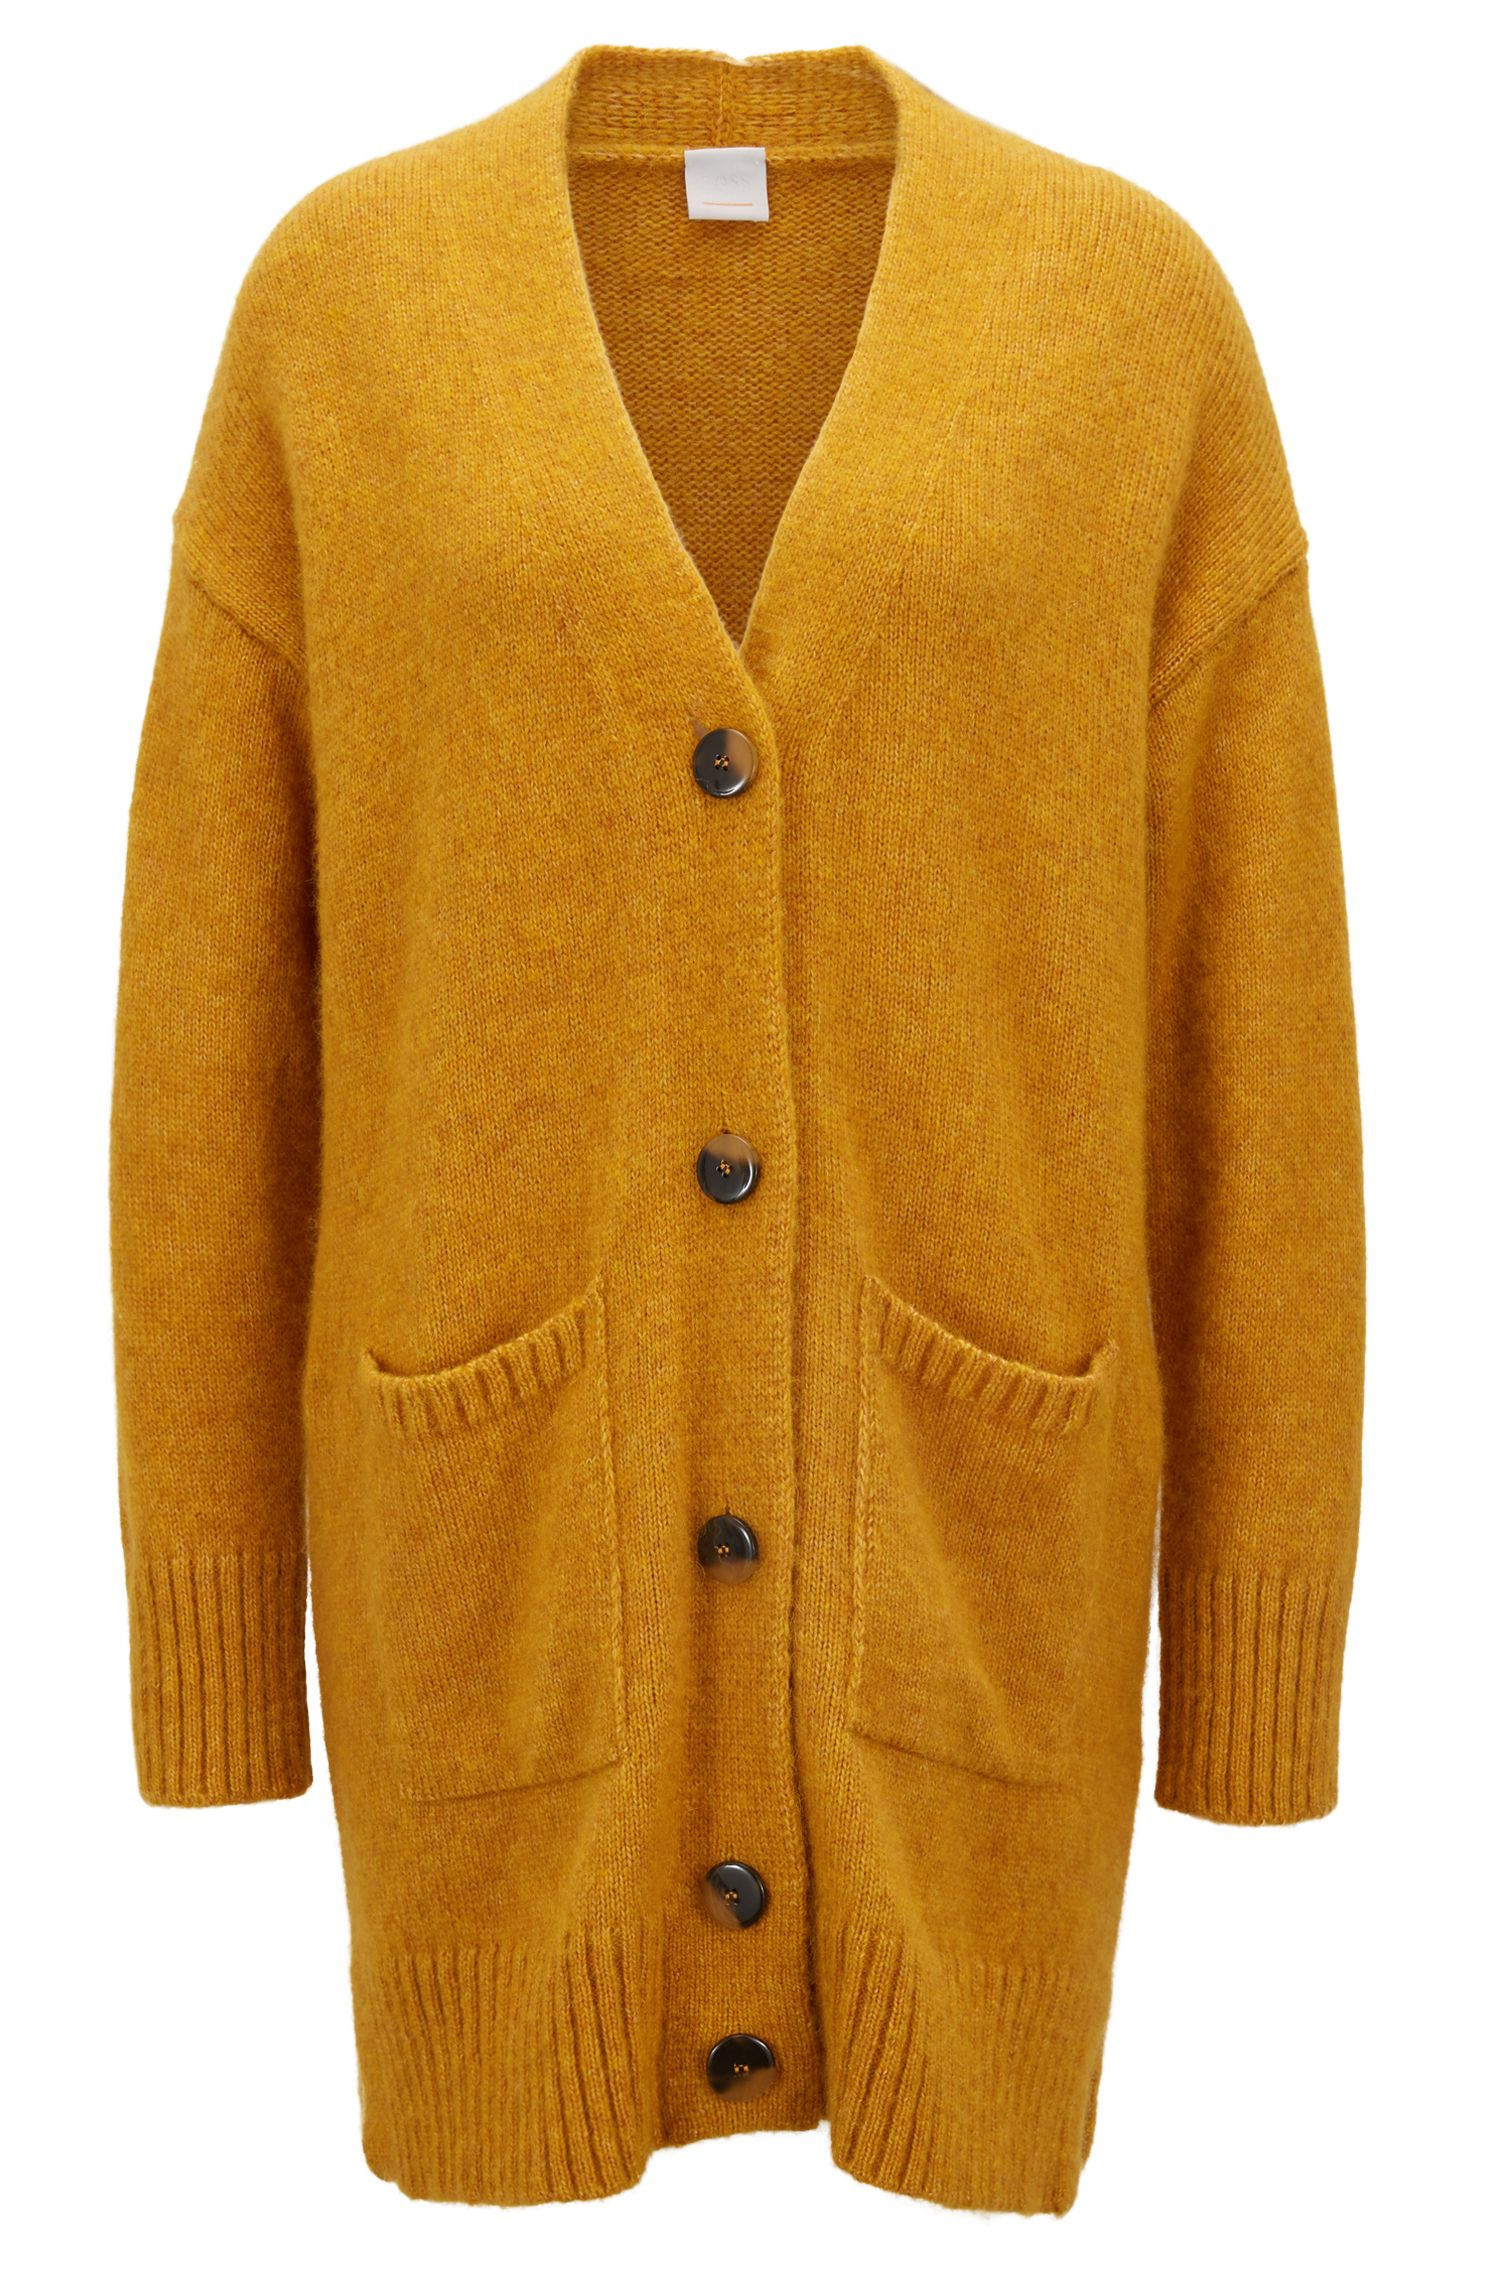 Cardigan long Oversized Fit à emmanchures tombantes, Or